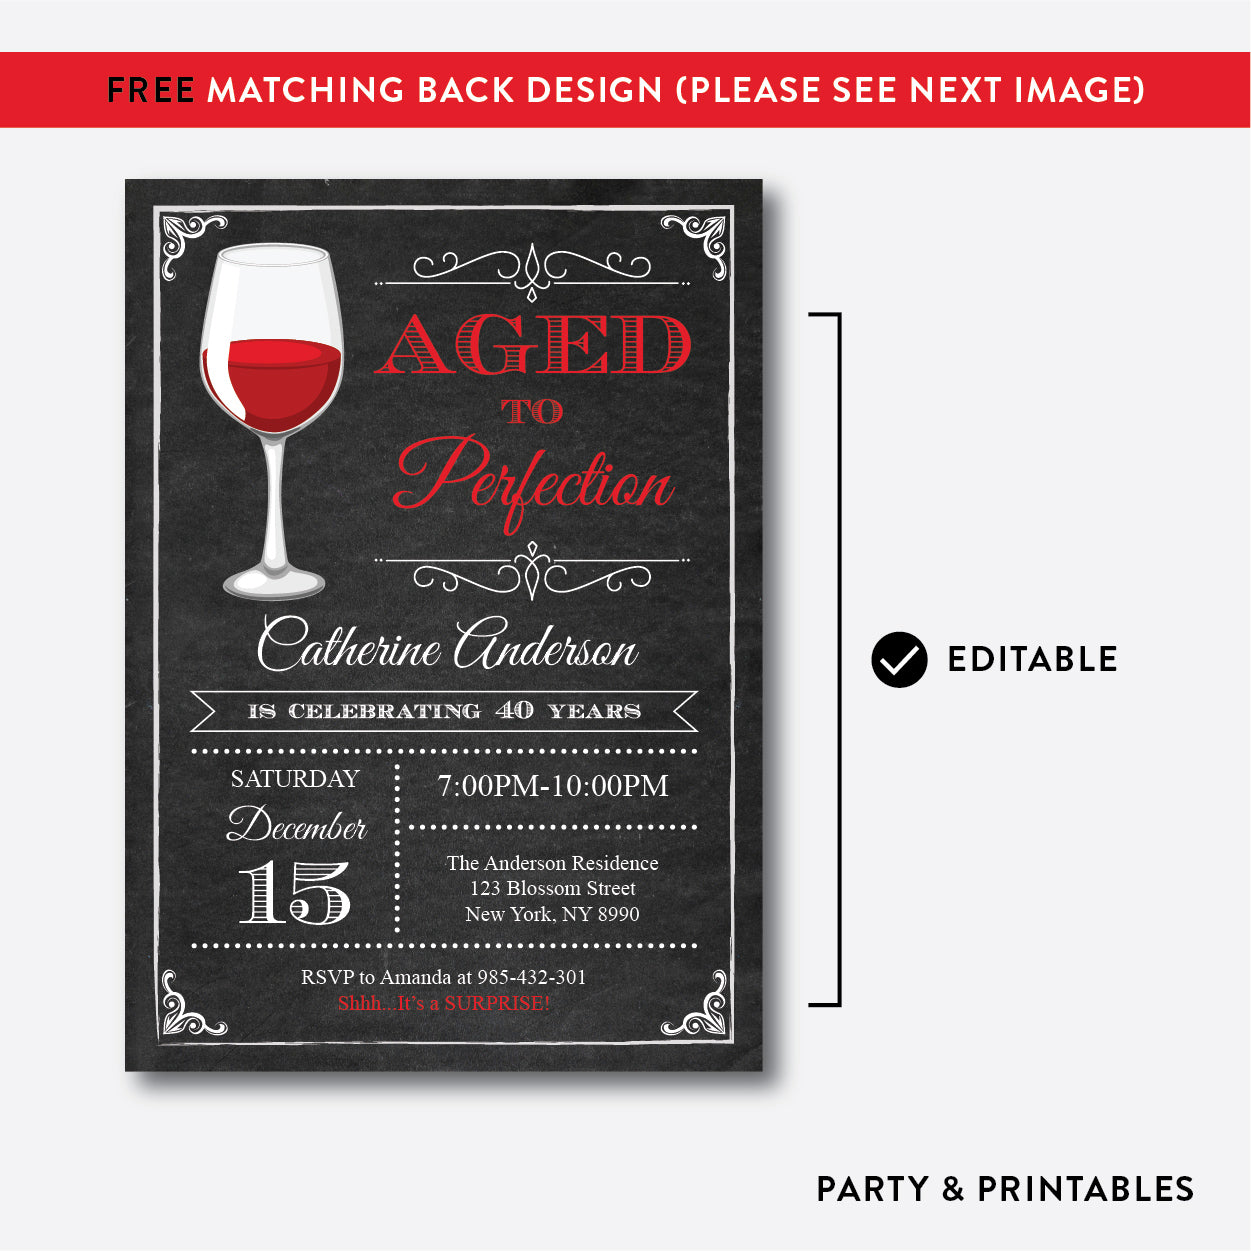 Aged To Perfection Adult Birthday Invitation / Editable / Instant Download (CAB.05), invitation - Party and Printables